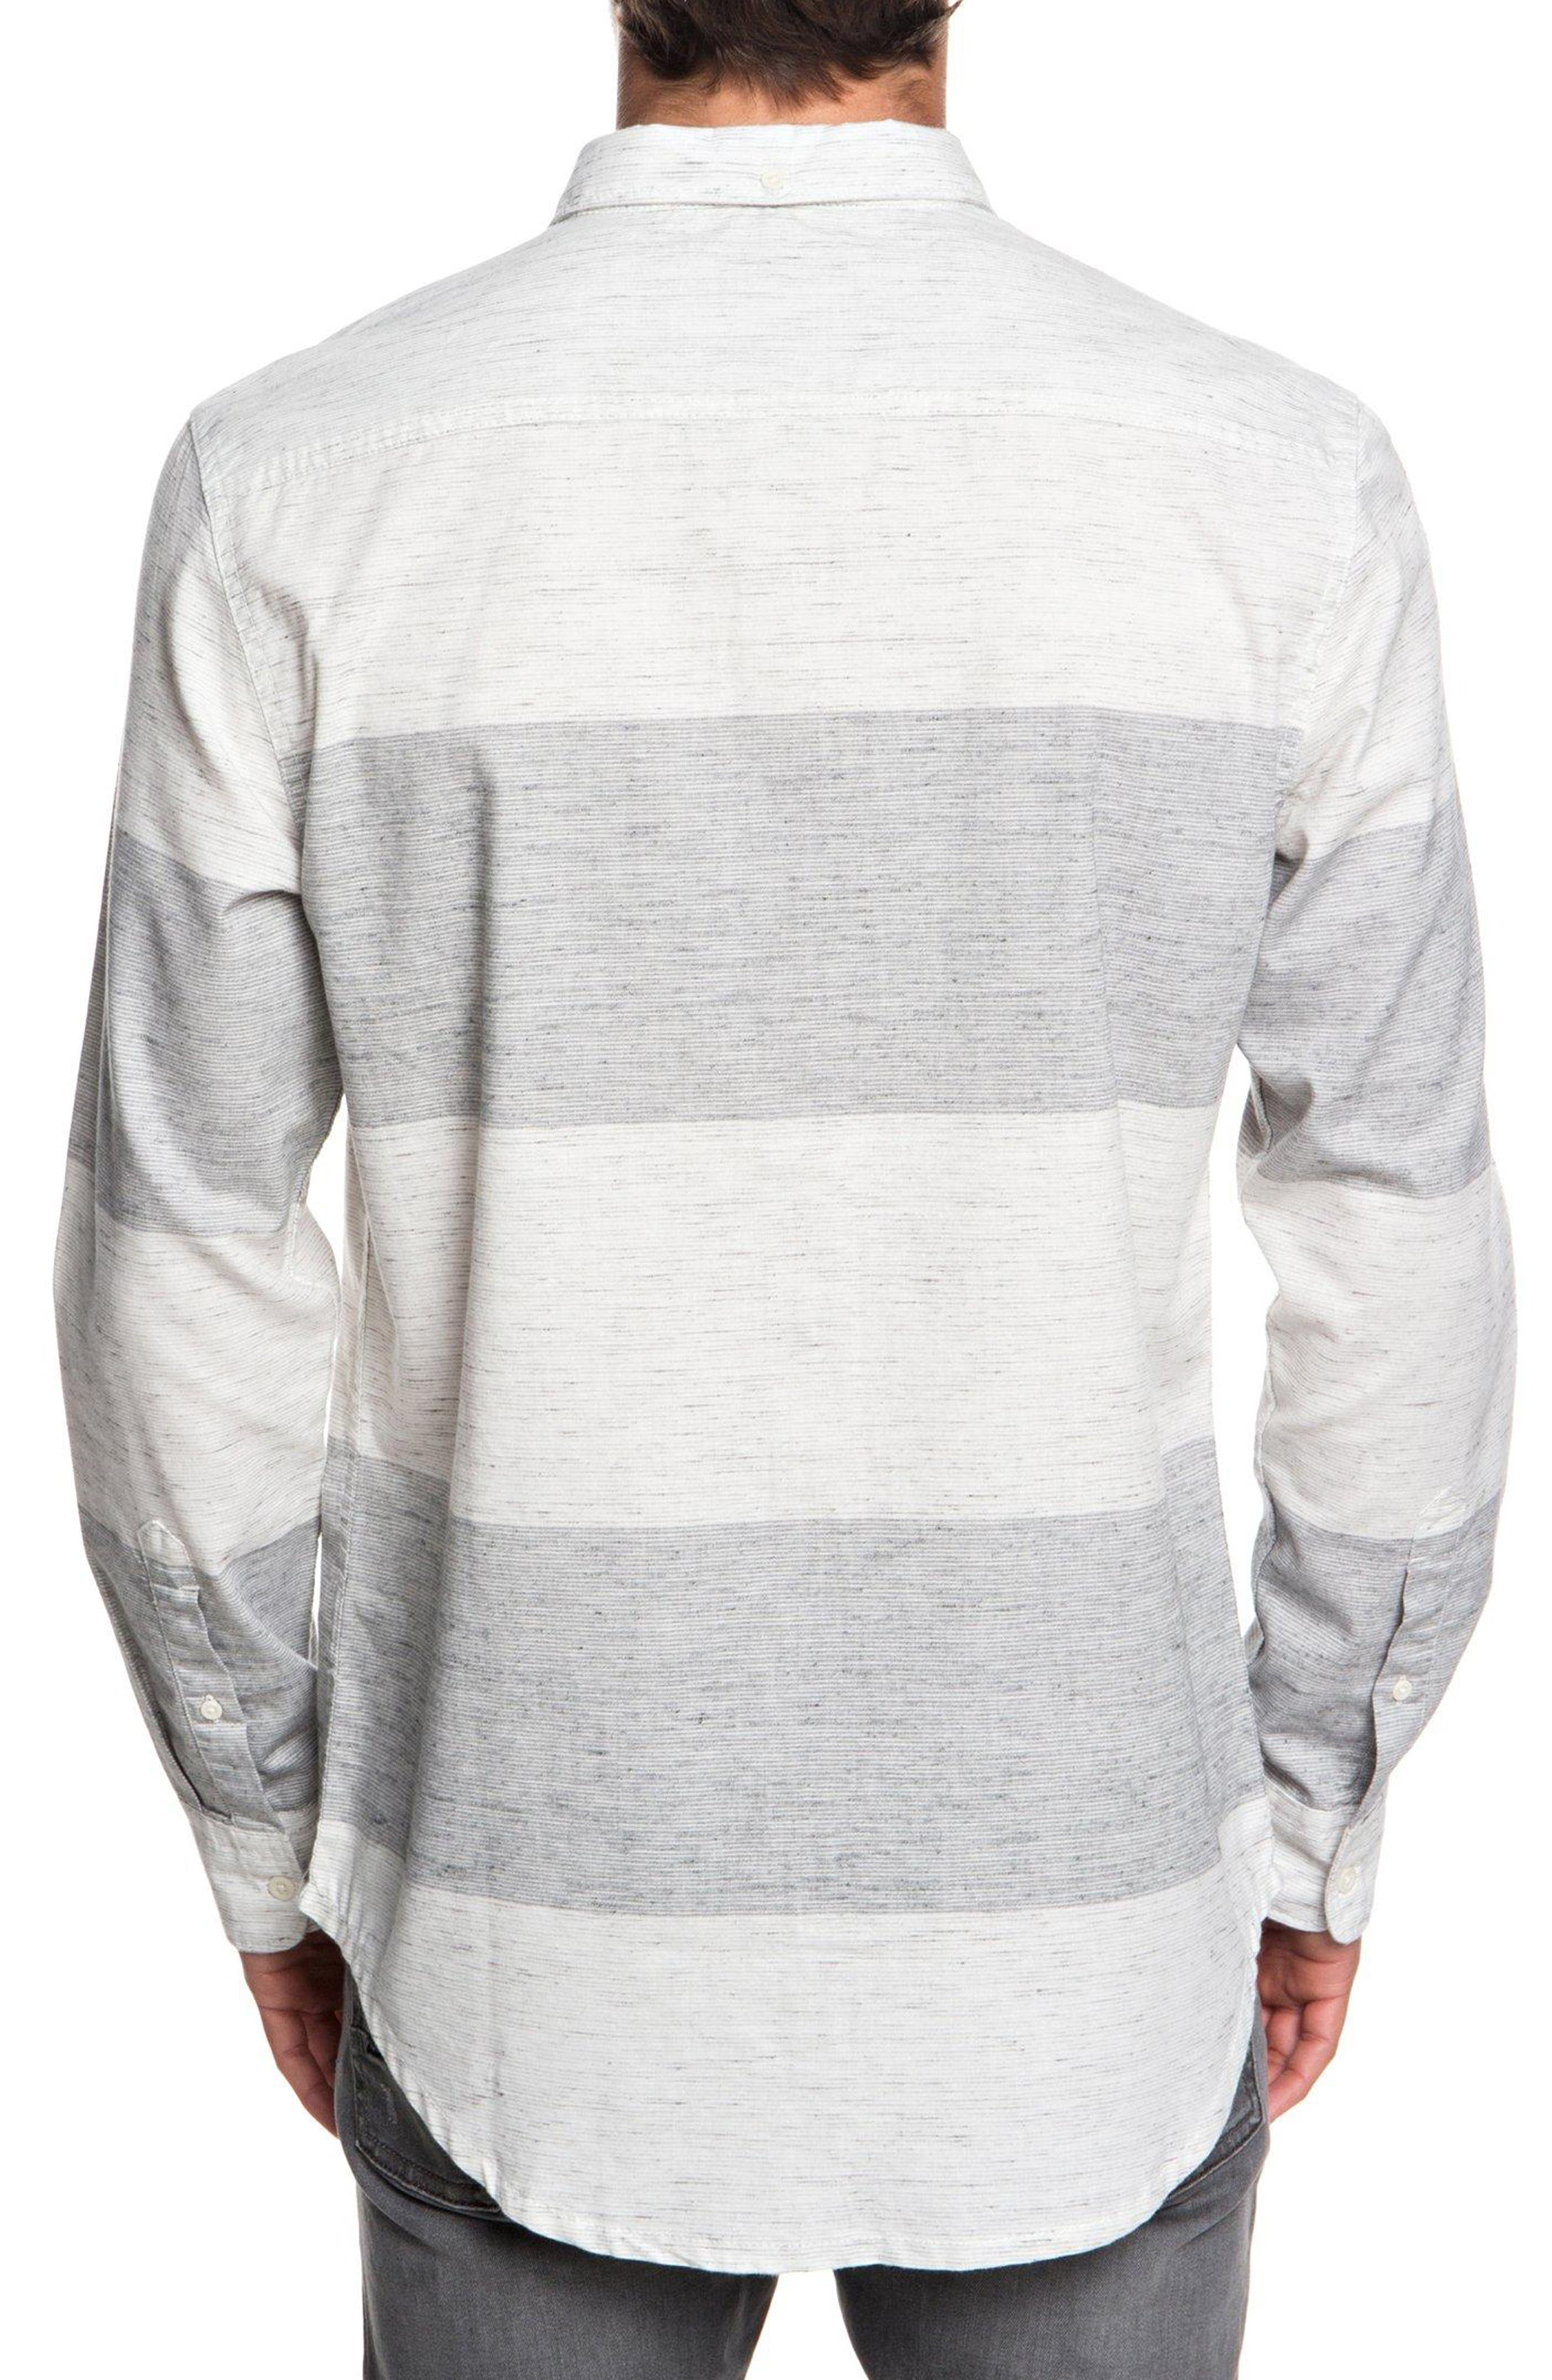 Minoo Valley Striped Shirt,                             Alternate thumbnail 2, color,                             IRON GATE MARBLE NEPPY